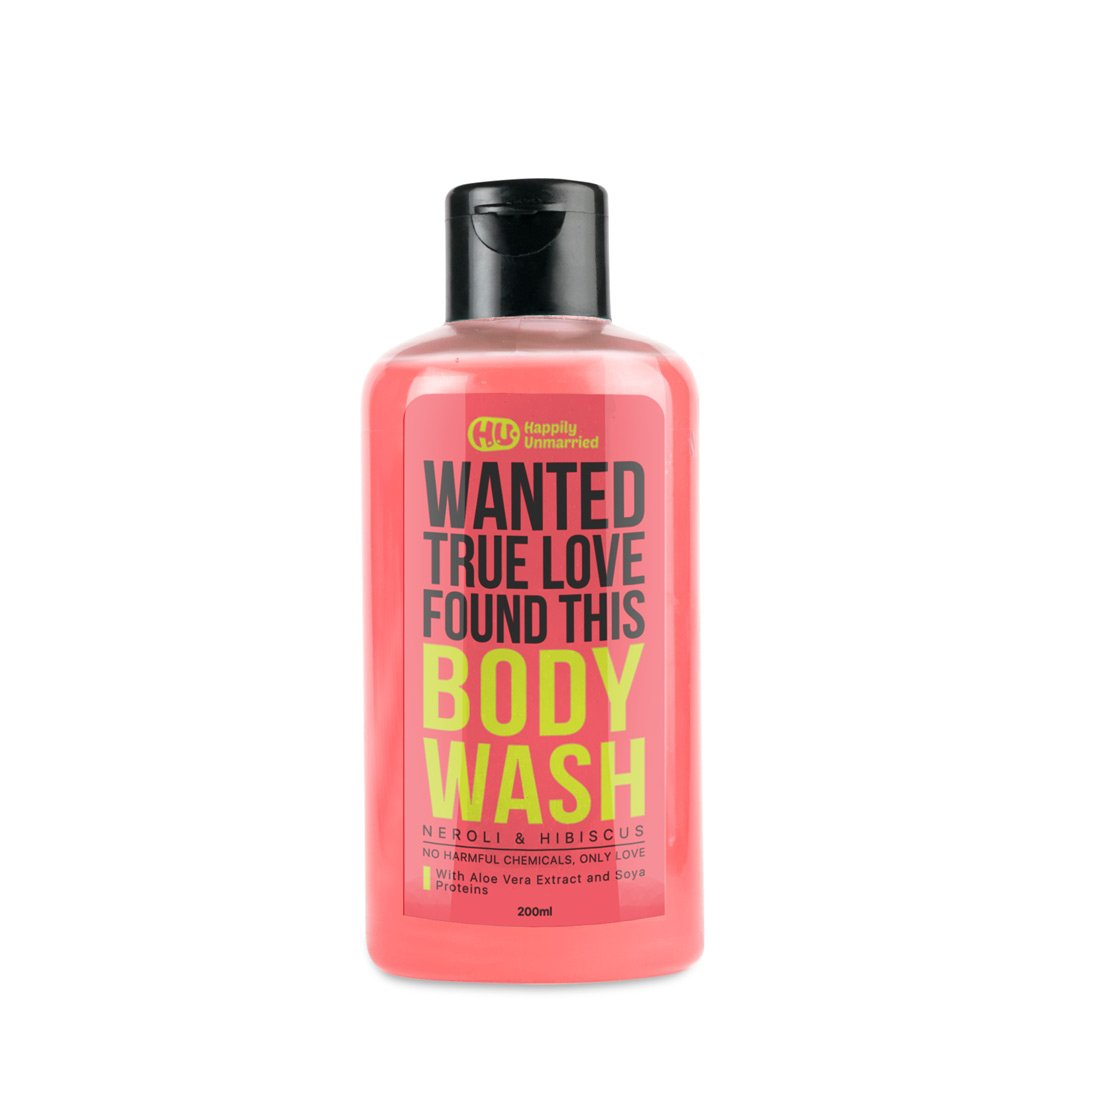 Happily Unmarried Body Wash, 200ml (Neroli and Hibiscus)